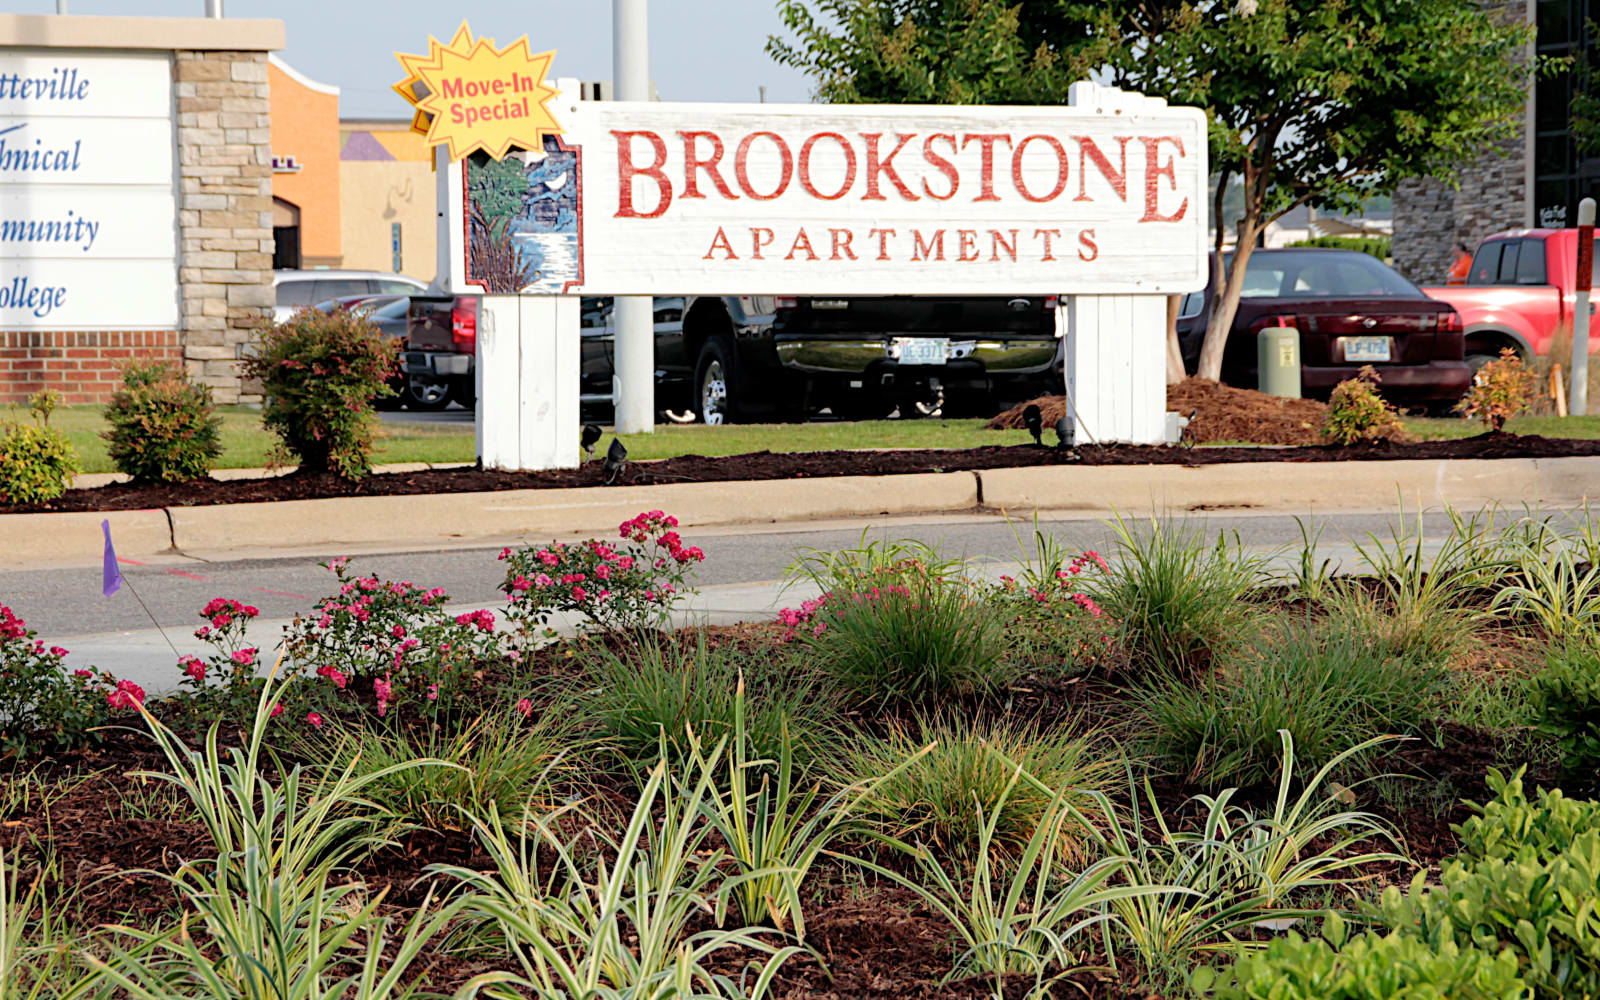 Brookstone Apartments in Fayetteville, North Carolina, front entrance sign